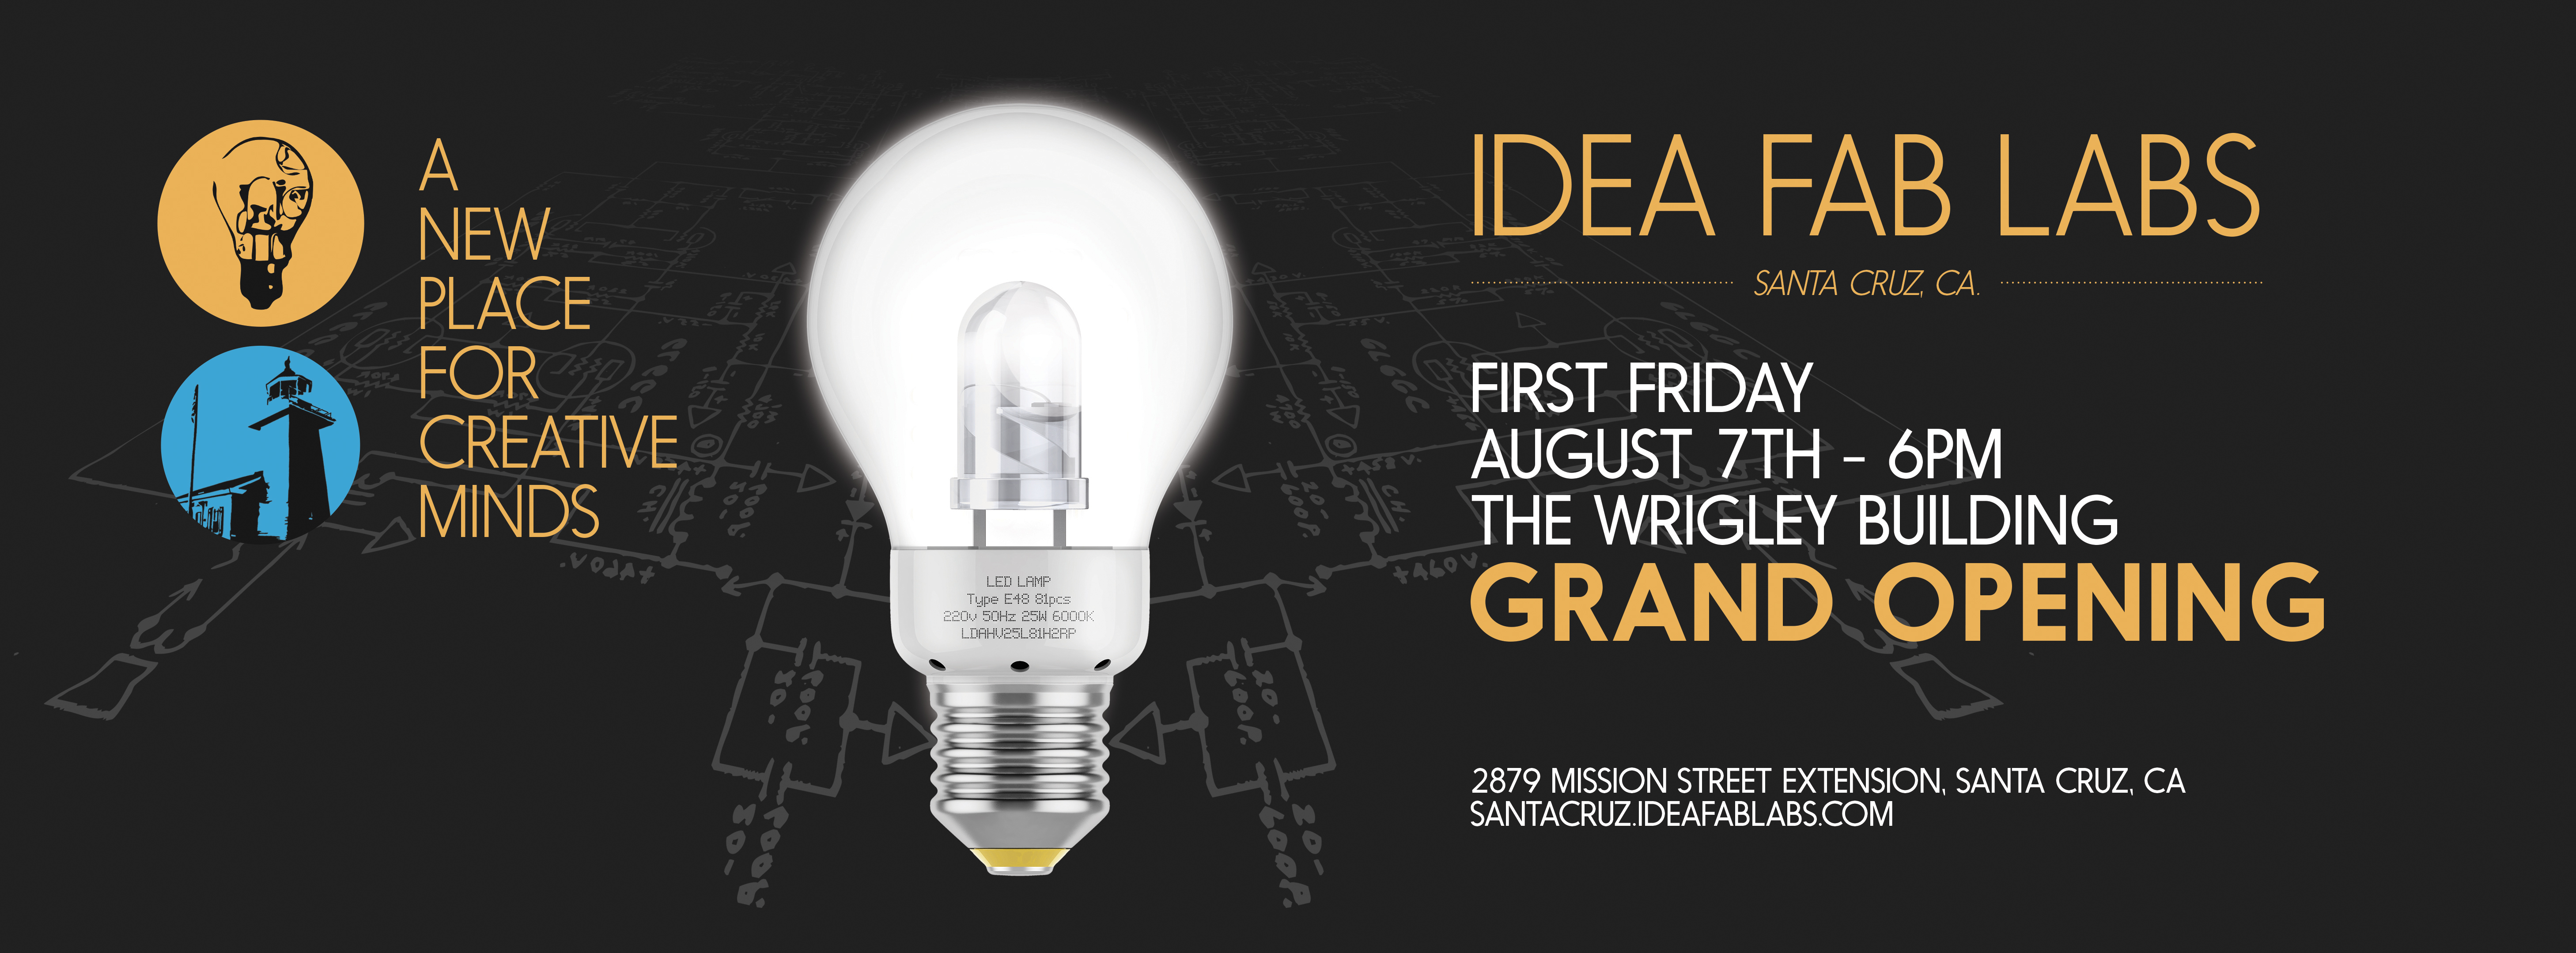 Grand Opening Friday, August 7th, 2015